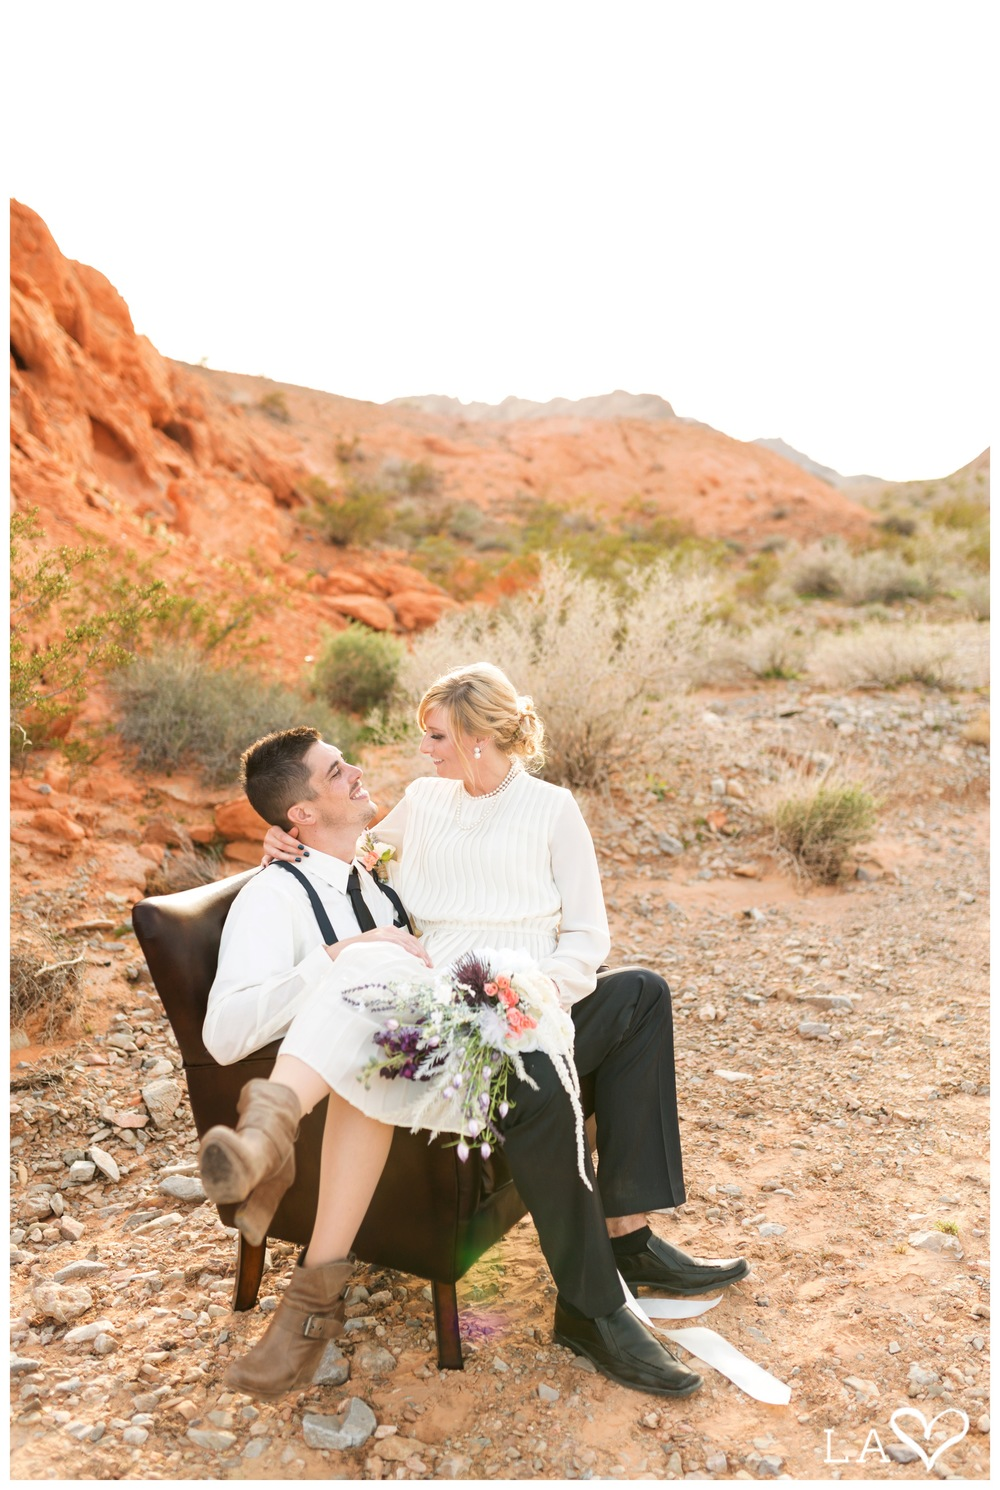 Las Vegas Wedding Photography - Lake Mead - Brittany and Jon-15.jpg